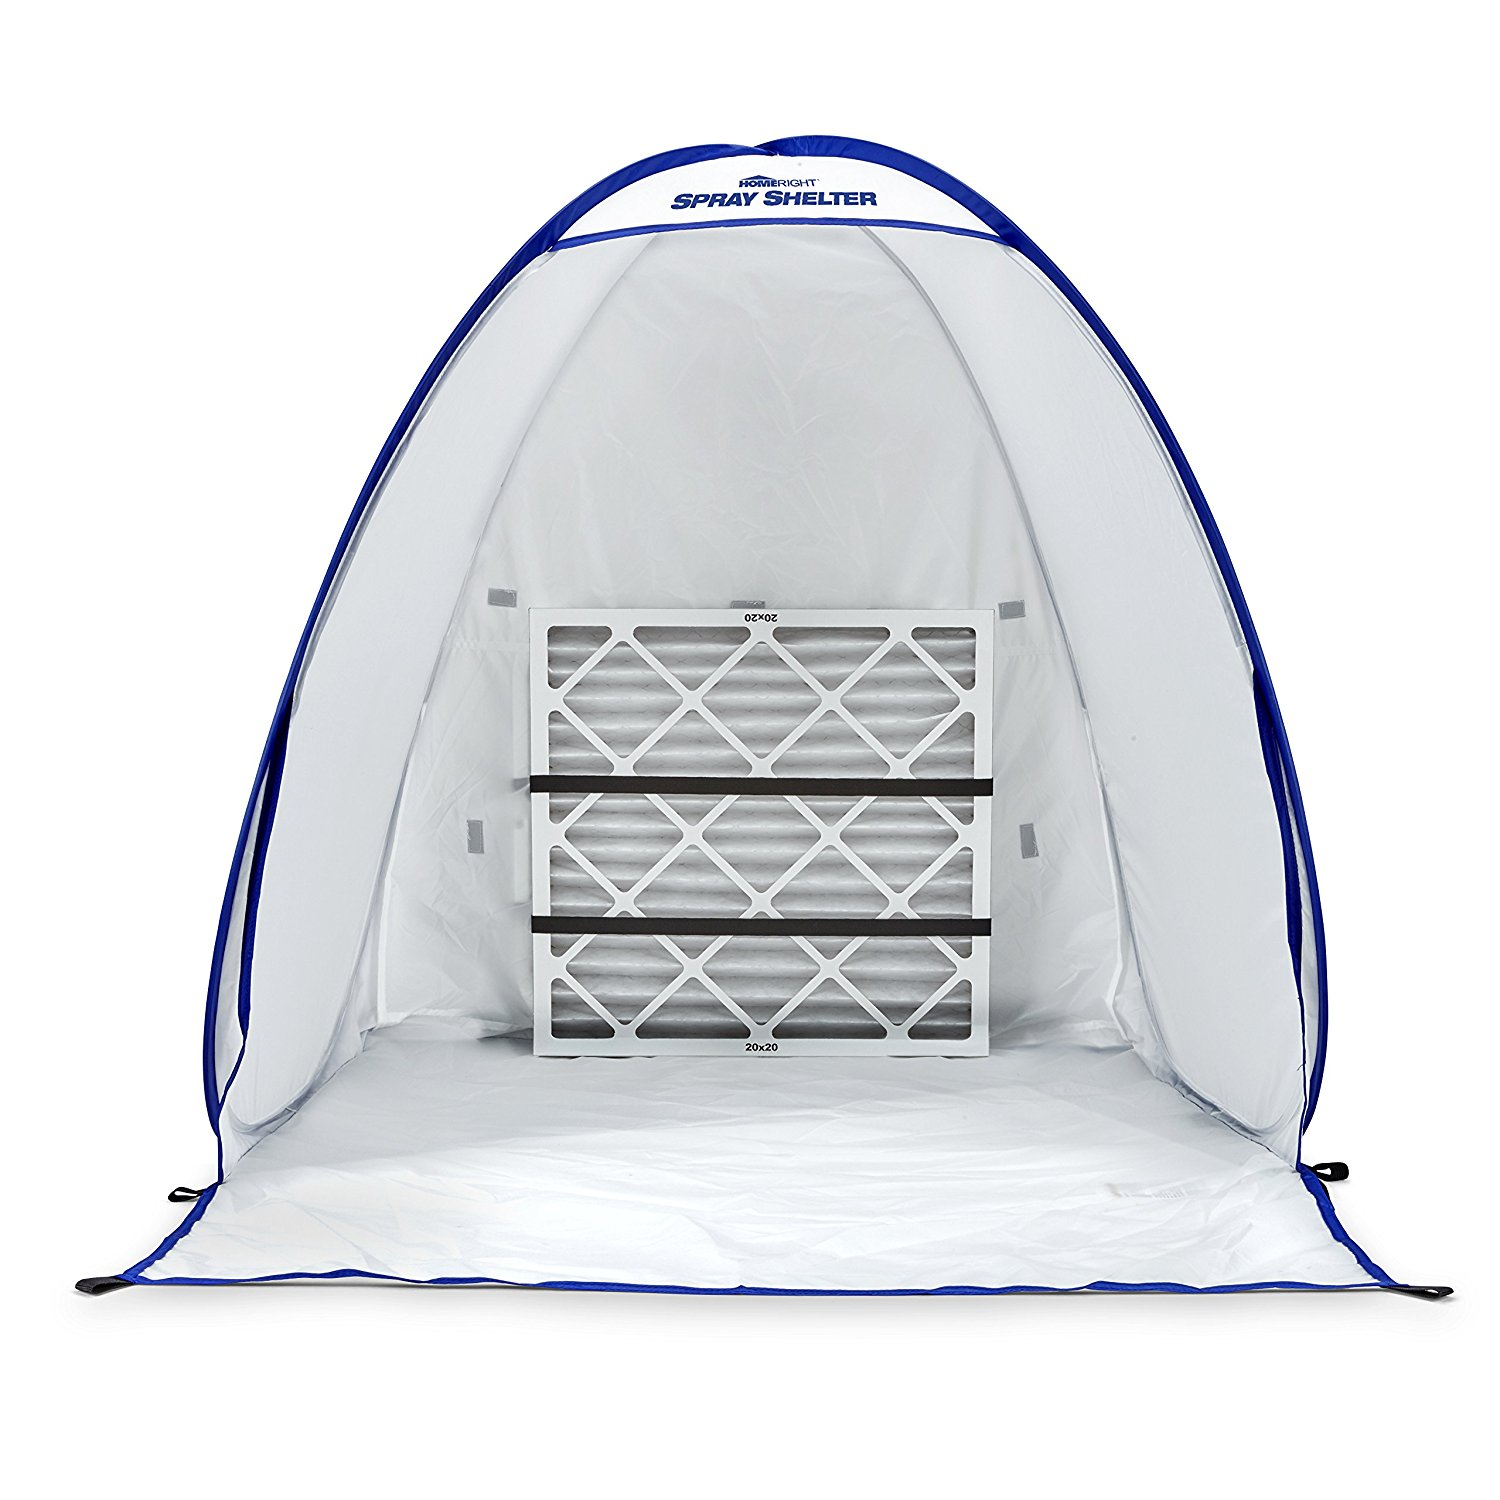 Small Spray Shelter with Straps - The home Right Spray Shelter Air Flow provides the perfect area to spray paint or stain on a variety of small to medium sized do-it-yourself projects. The spray shelter has dimensions of 35